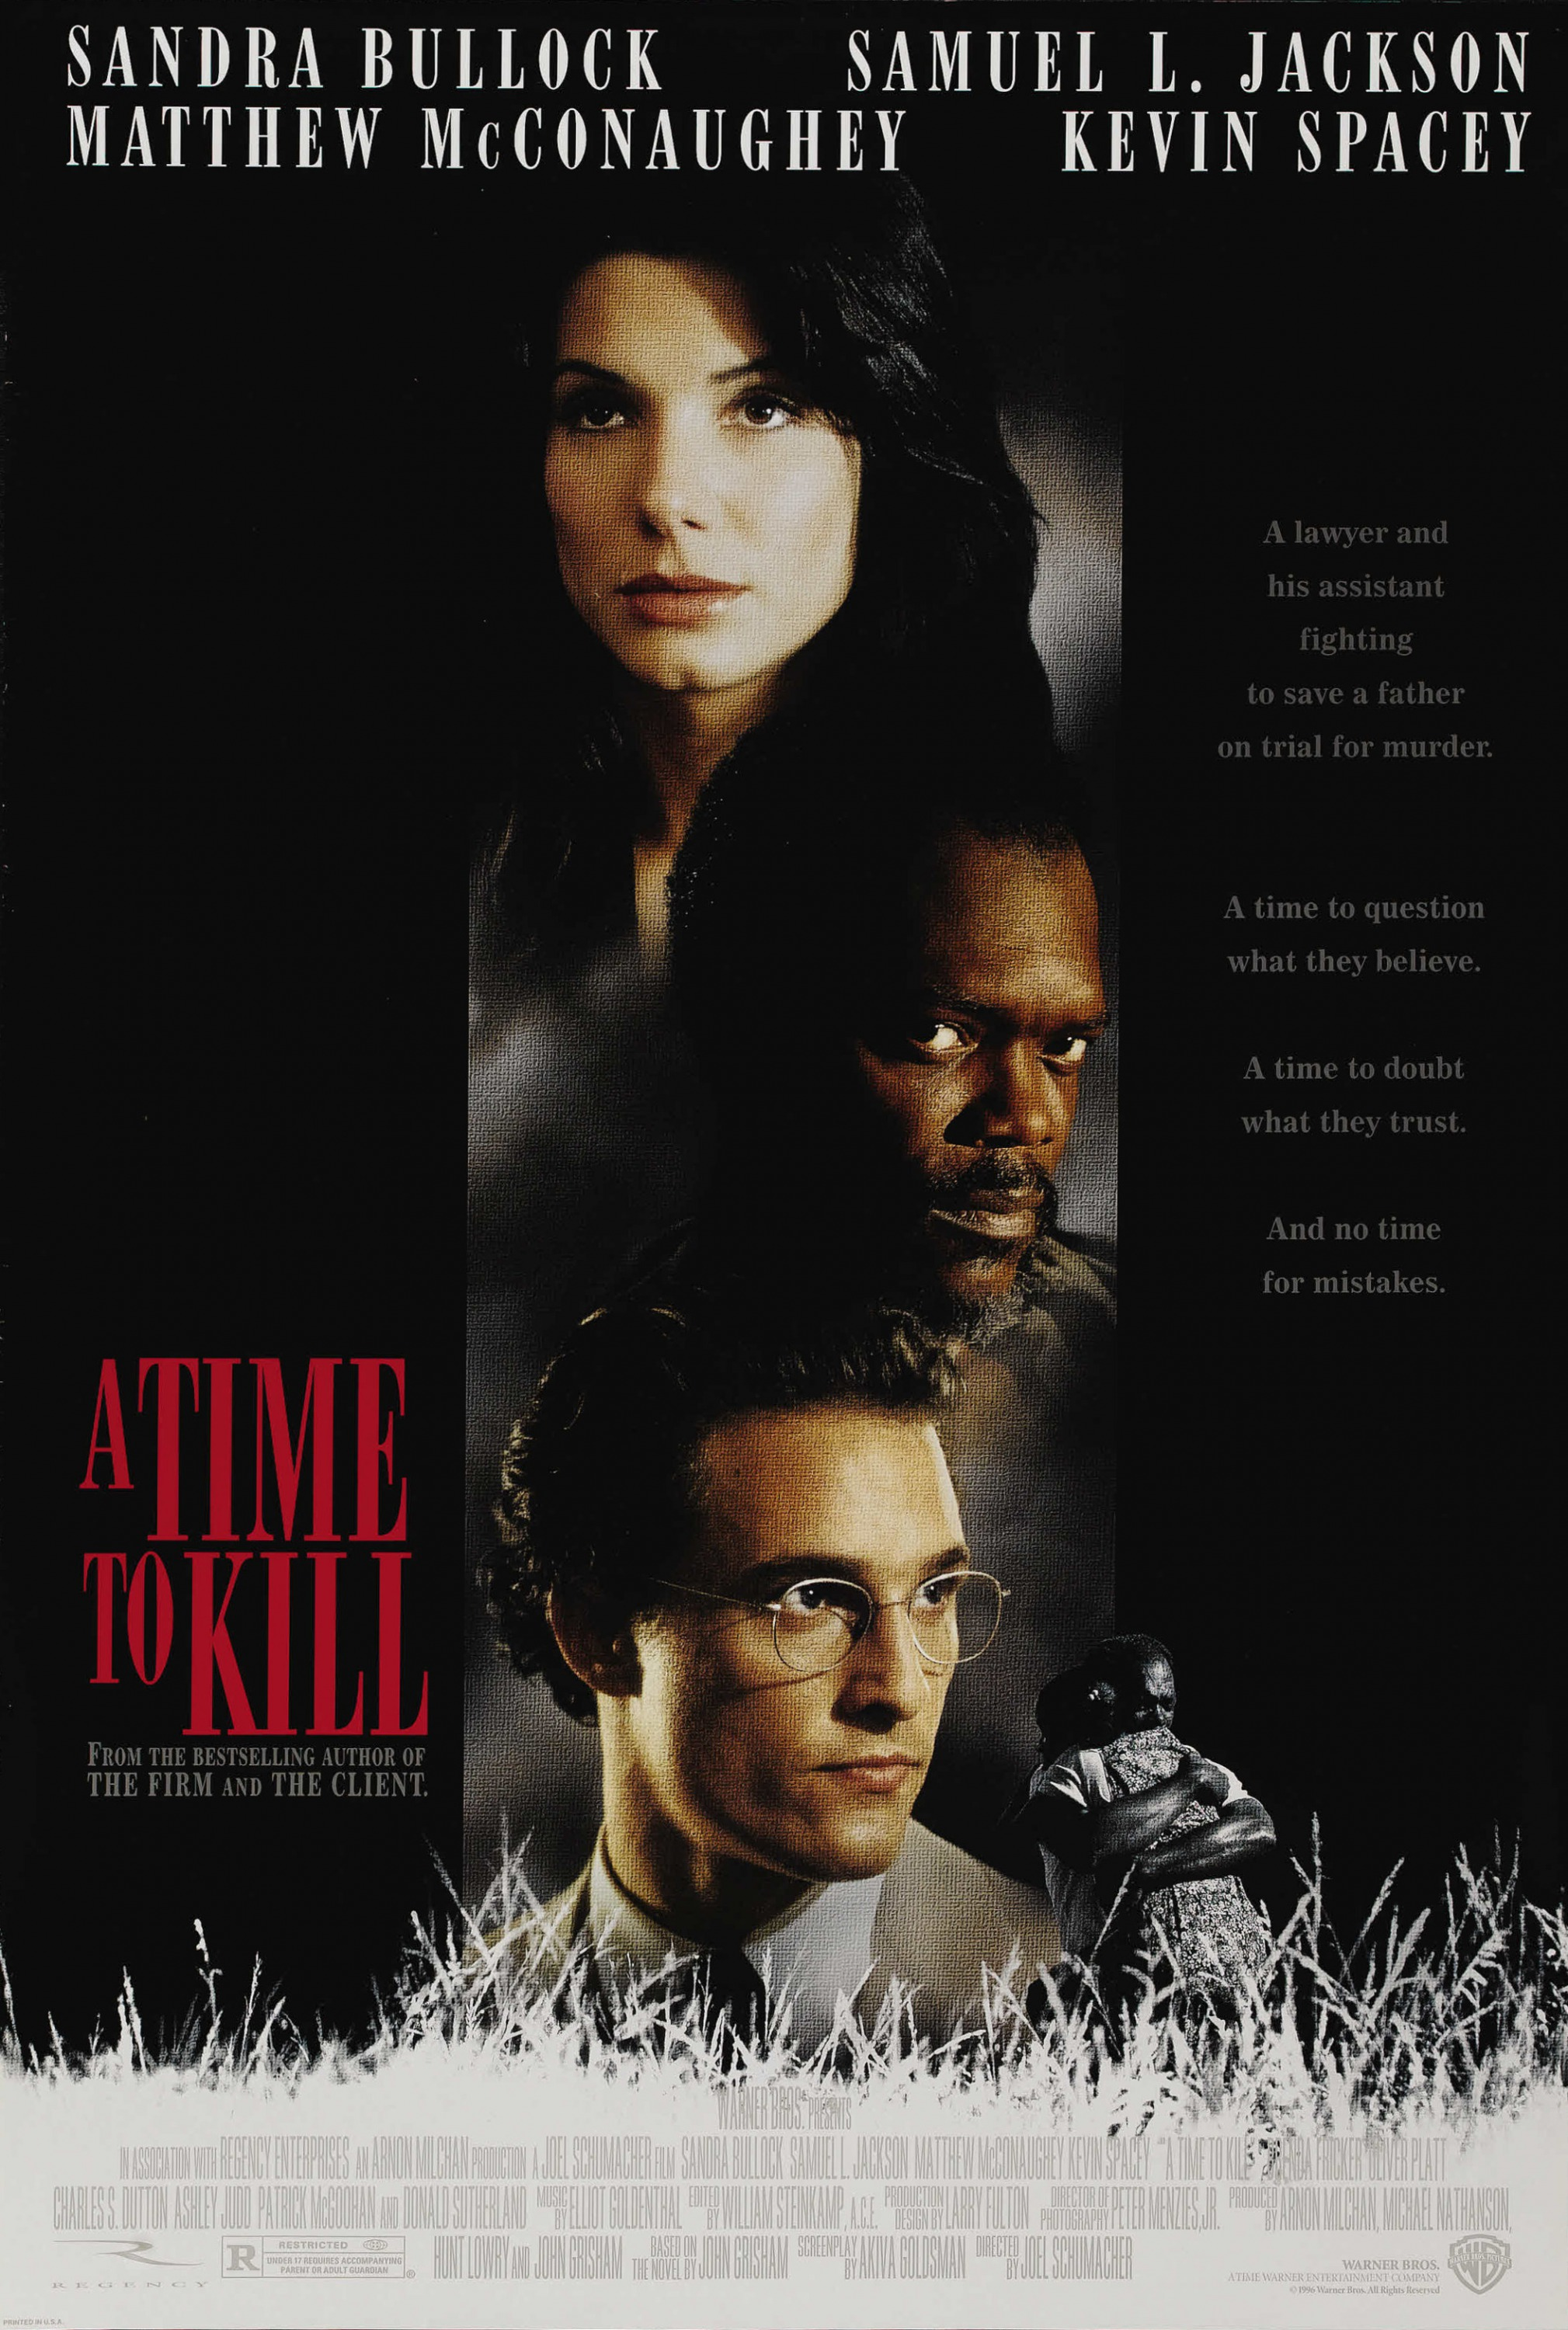 A Time to Kill (film)